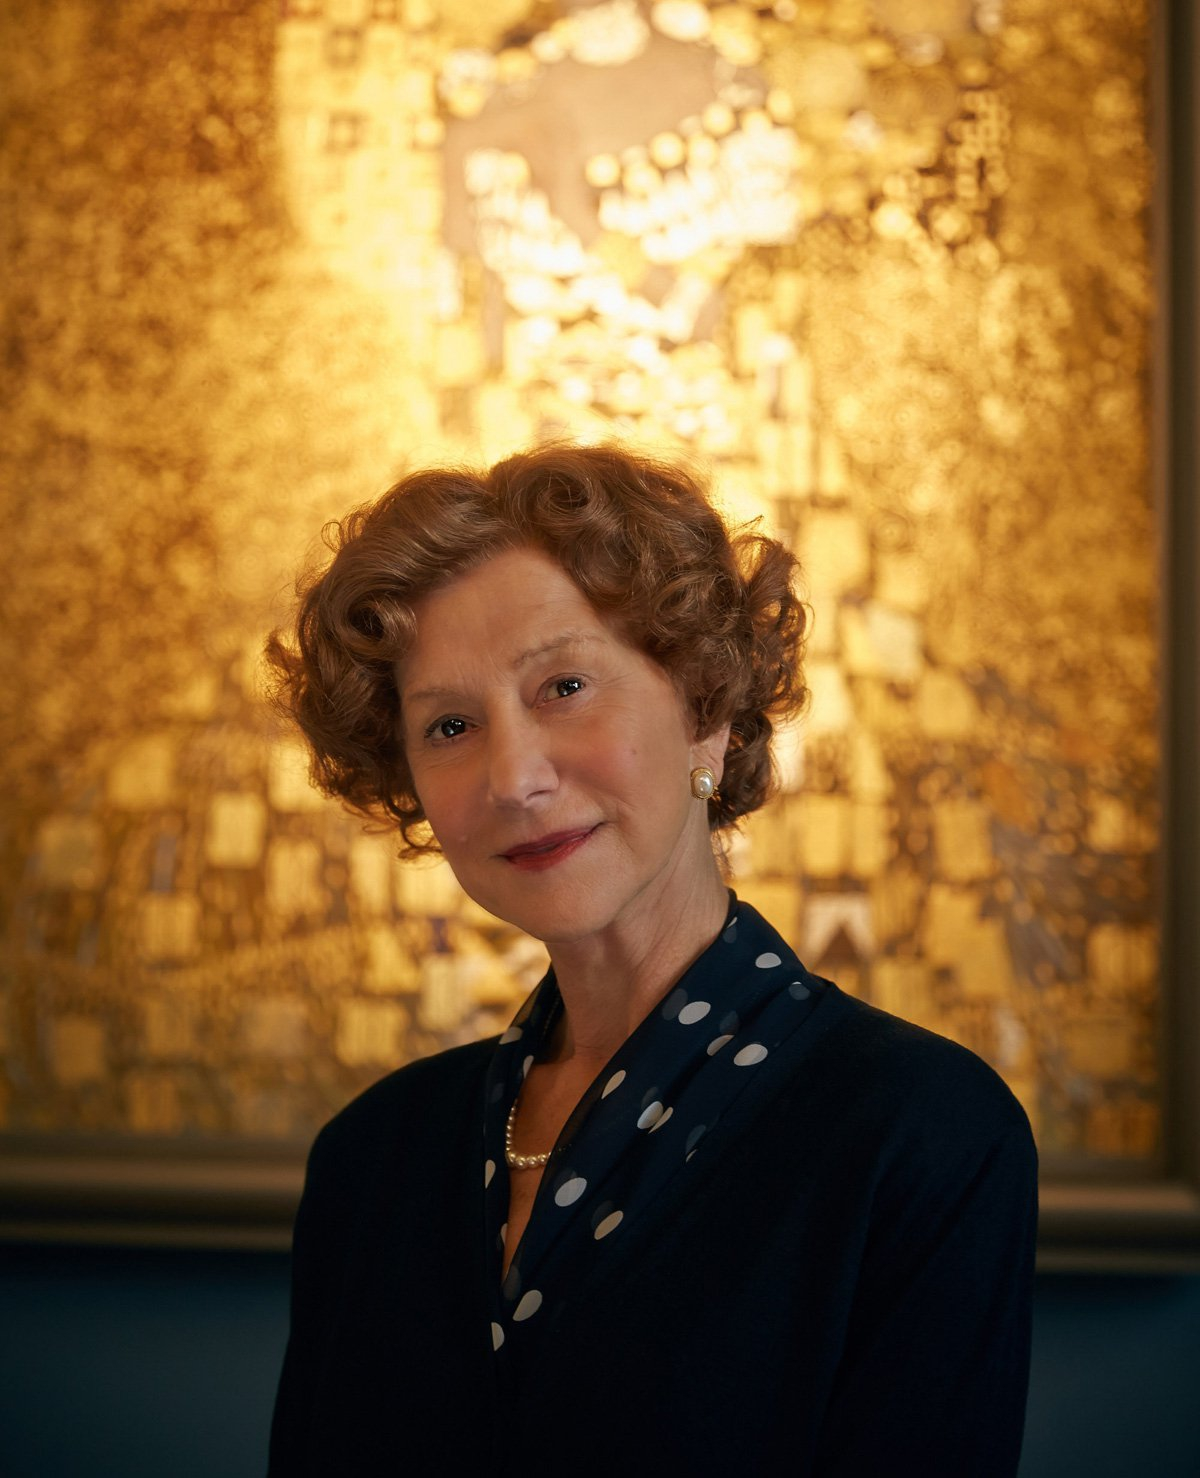 Win bioscoopkaarten voor Woman in Gold